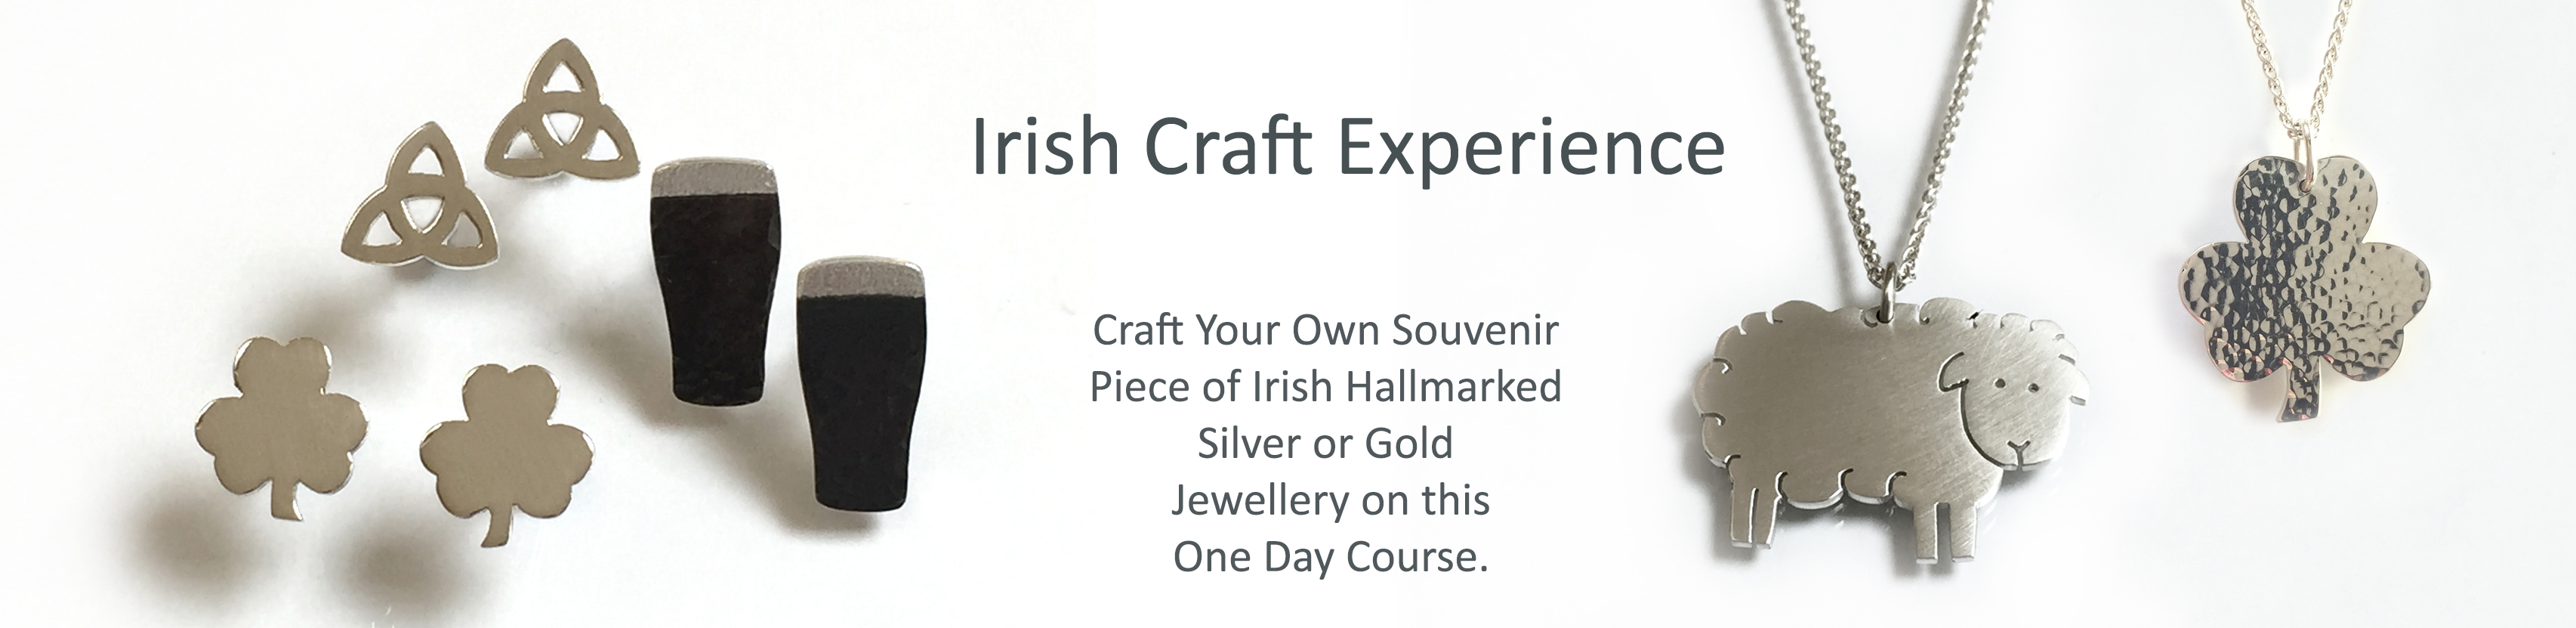 Irish Craft Experience